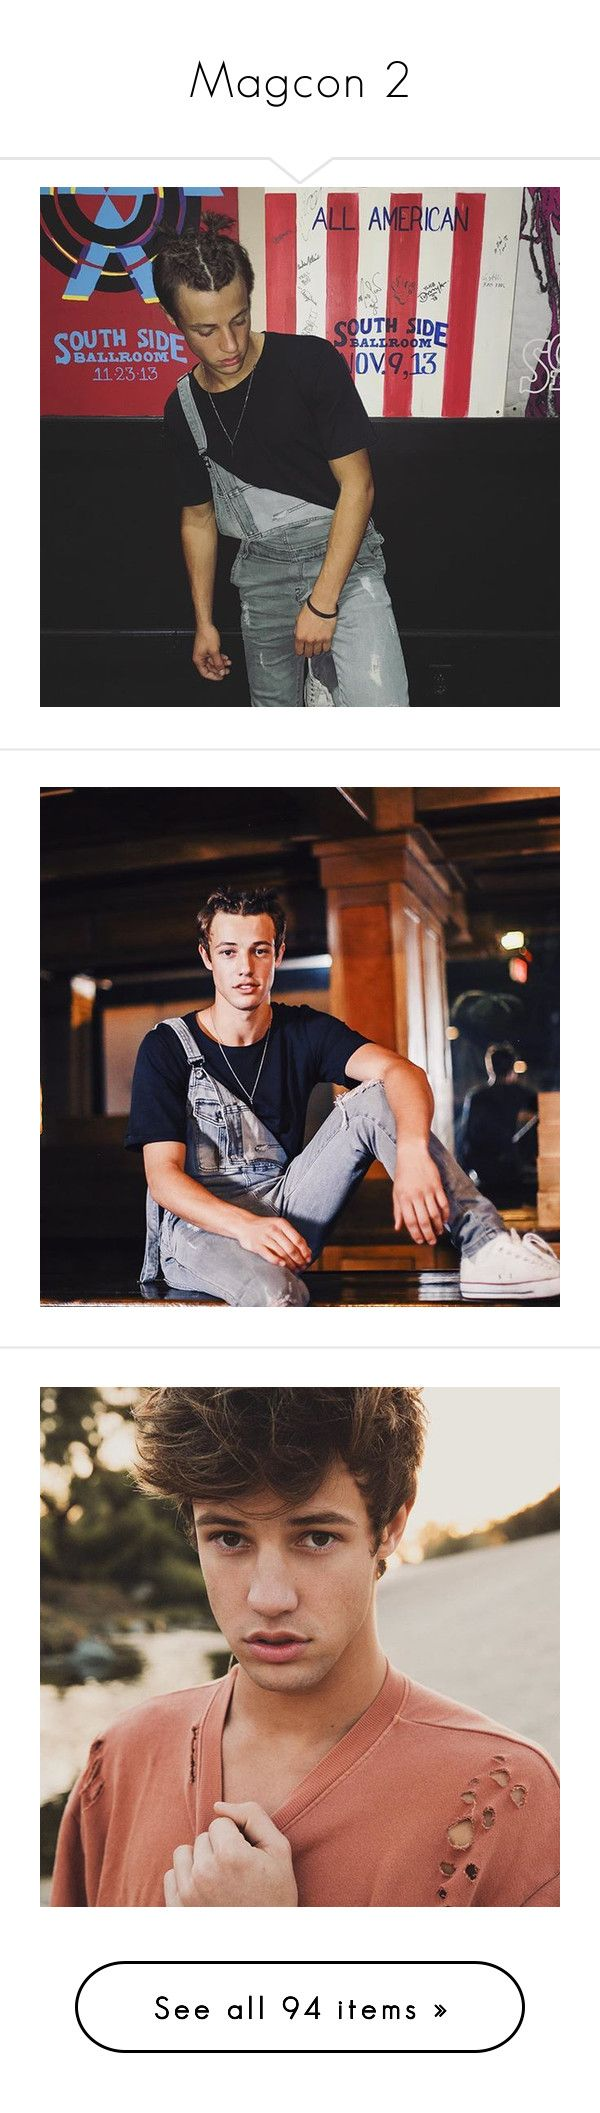 """""""Magcon 2"""" by hola-hi ❤ liked on Polyvore featuring cameron dallas, taylor caniff, aaron carpenter, magcon, shawn mendes, shawn, boys, magcon boys and quotes"""